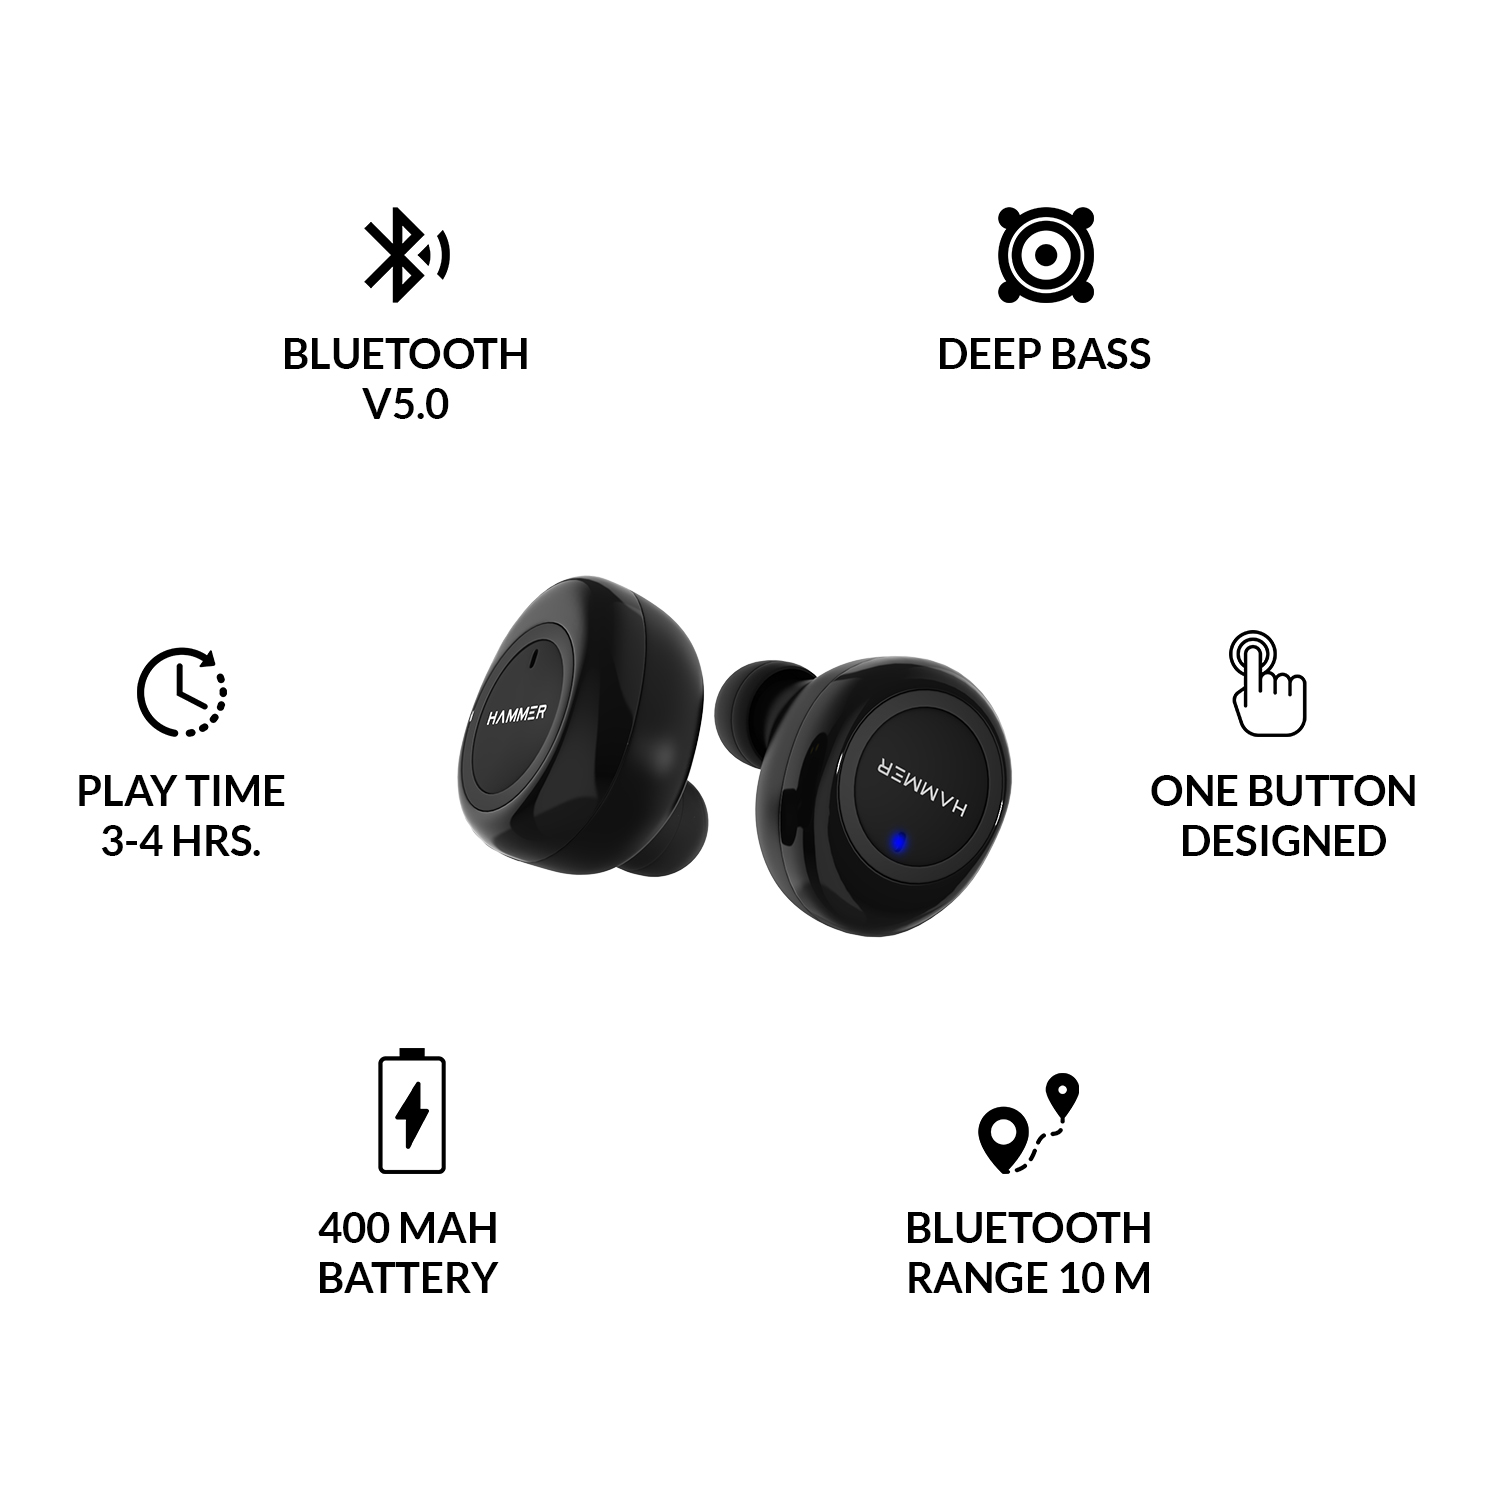 Hammer Airflow Truly Wireless Earbuds (TWS), Bluetooth 5.0, 3-4 Hours Playtime, 10M Range, Wireless Headphone with Magnetic Charging Case (300mah), in-Built Mic (Black)